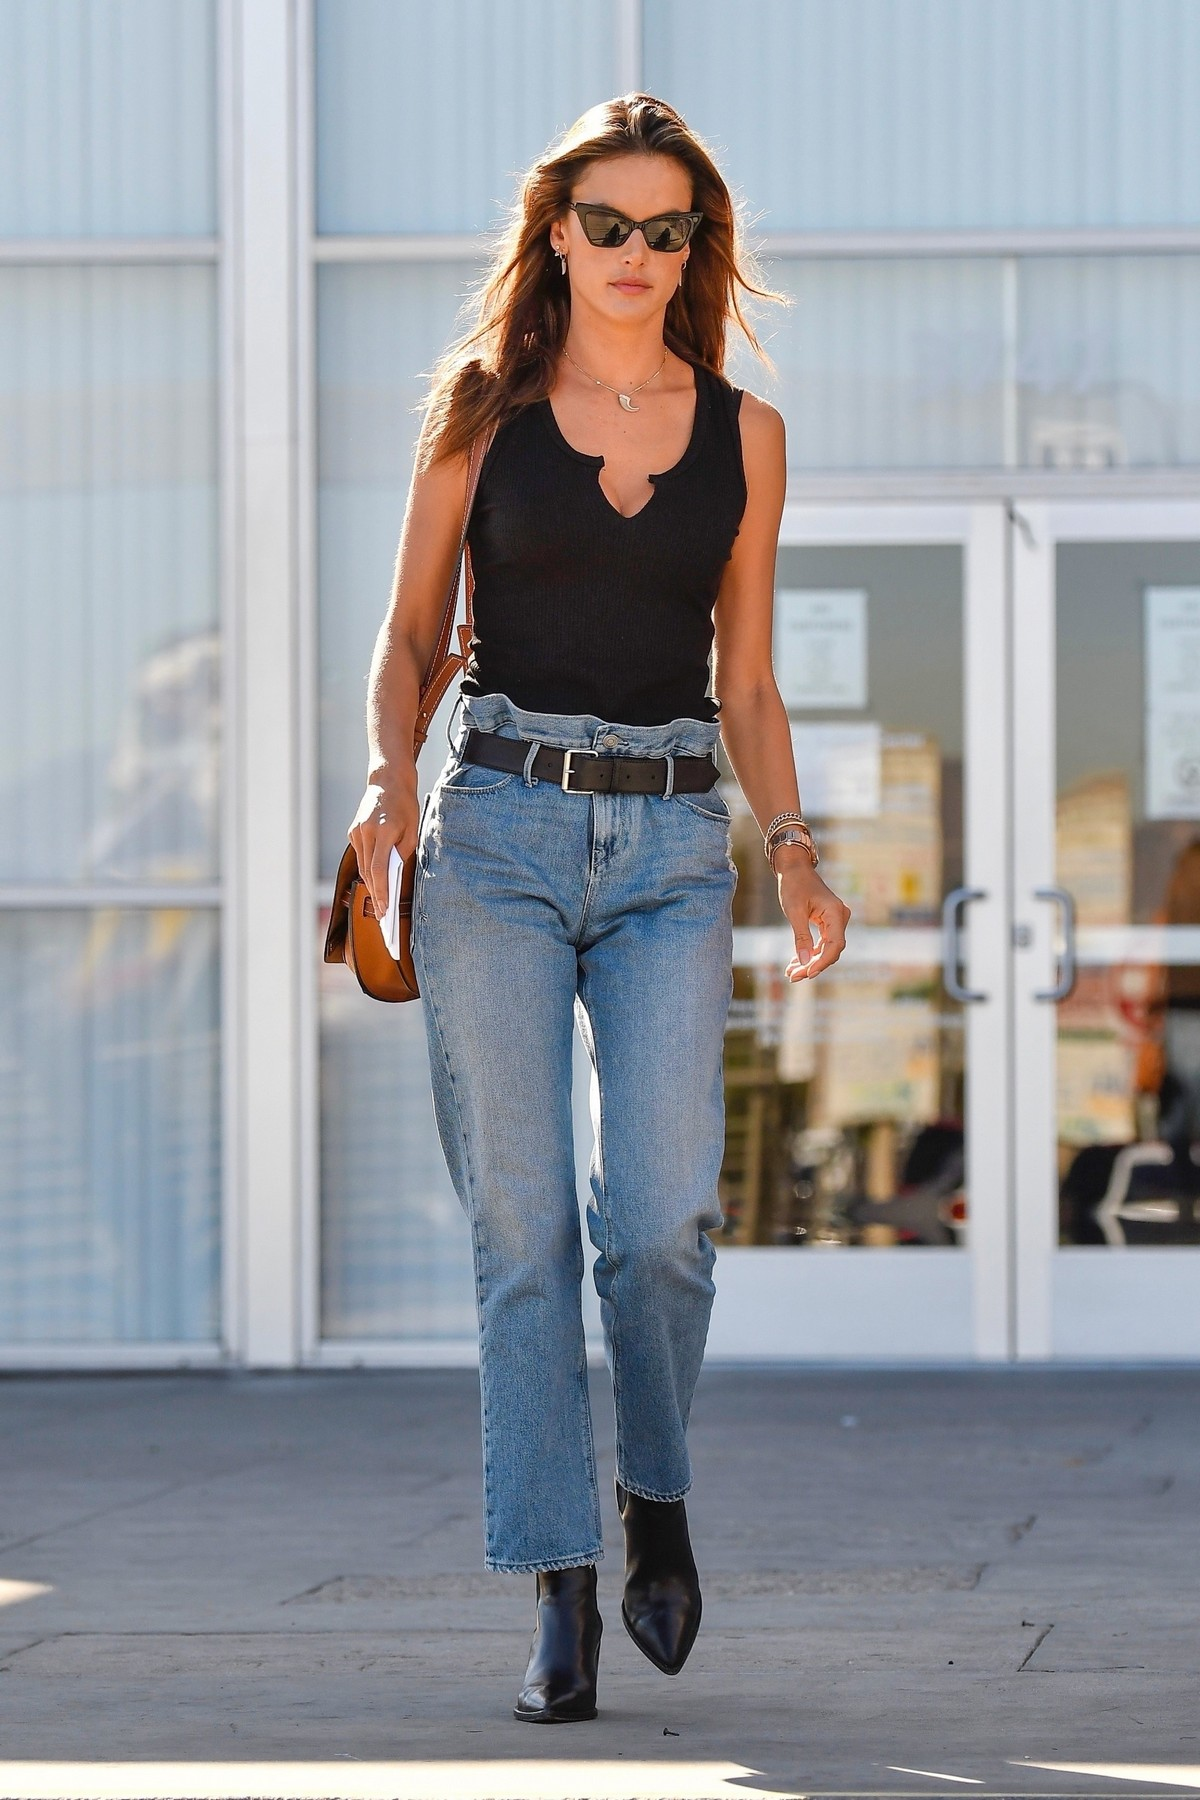 Alessandra Ambrosio in Black Top and Blue Jeans out in Los Angeles 2019/11/18 18